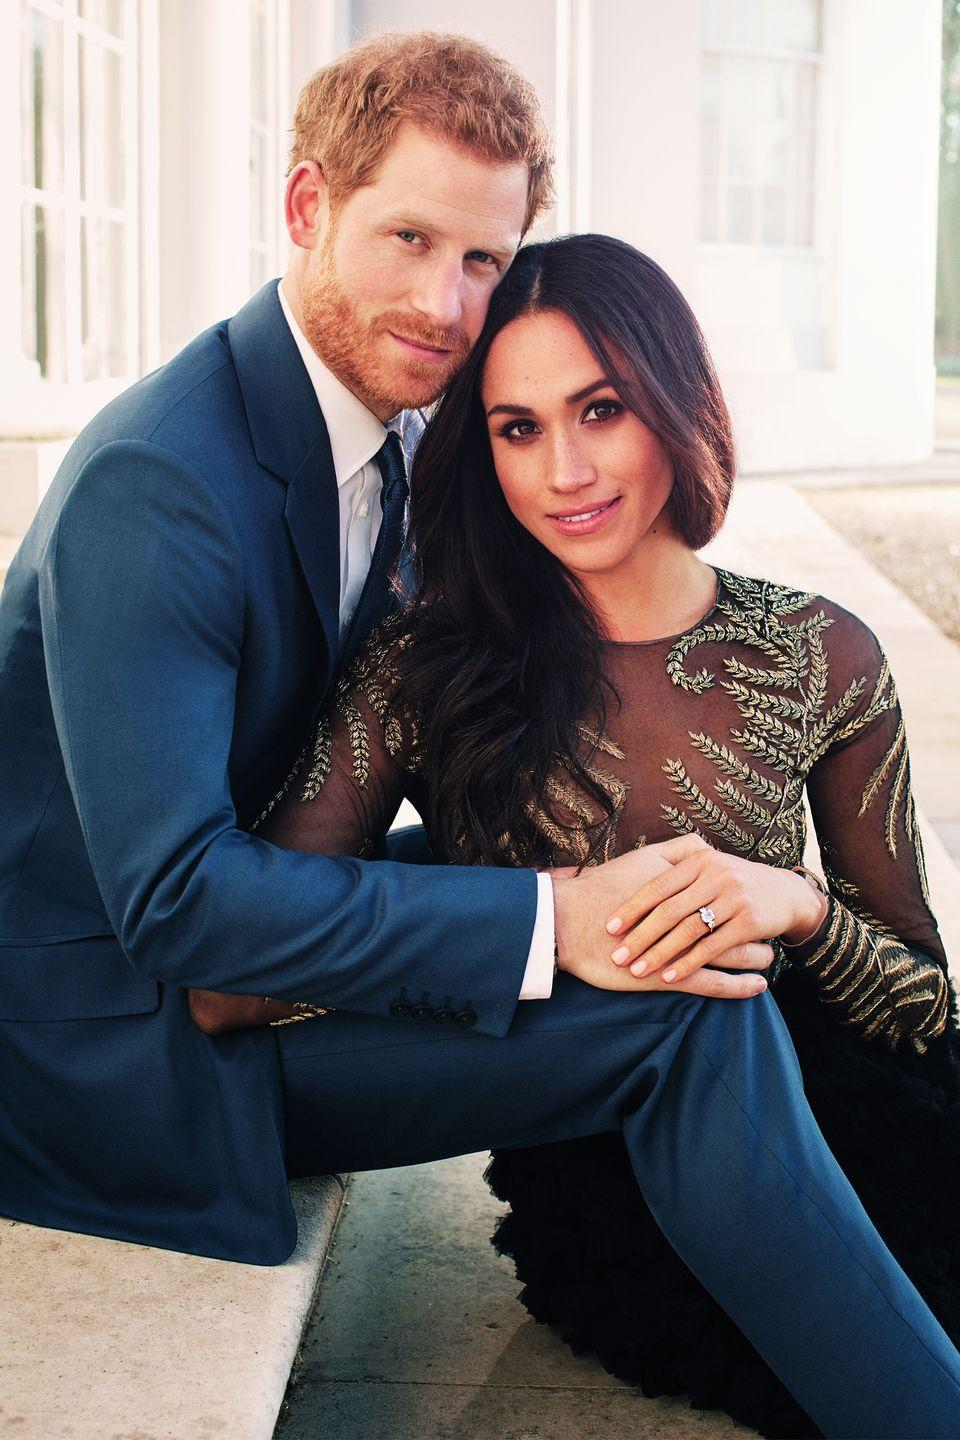 <p>Meghan and Harry sit close during an official engagement photo shoot.</p>